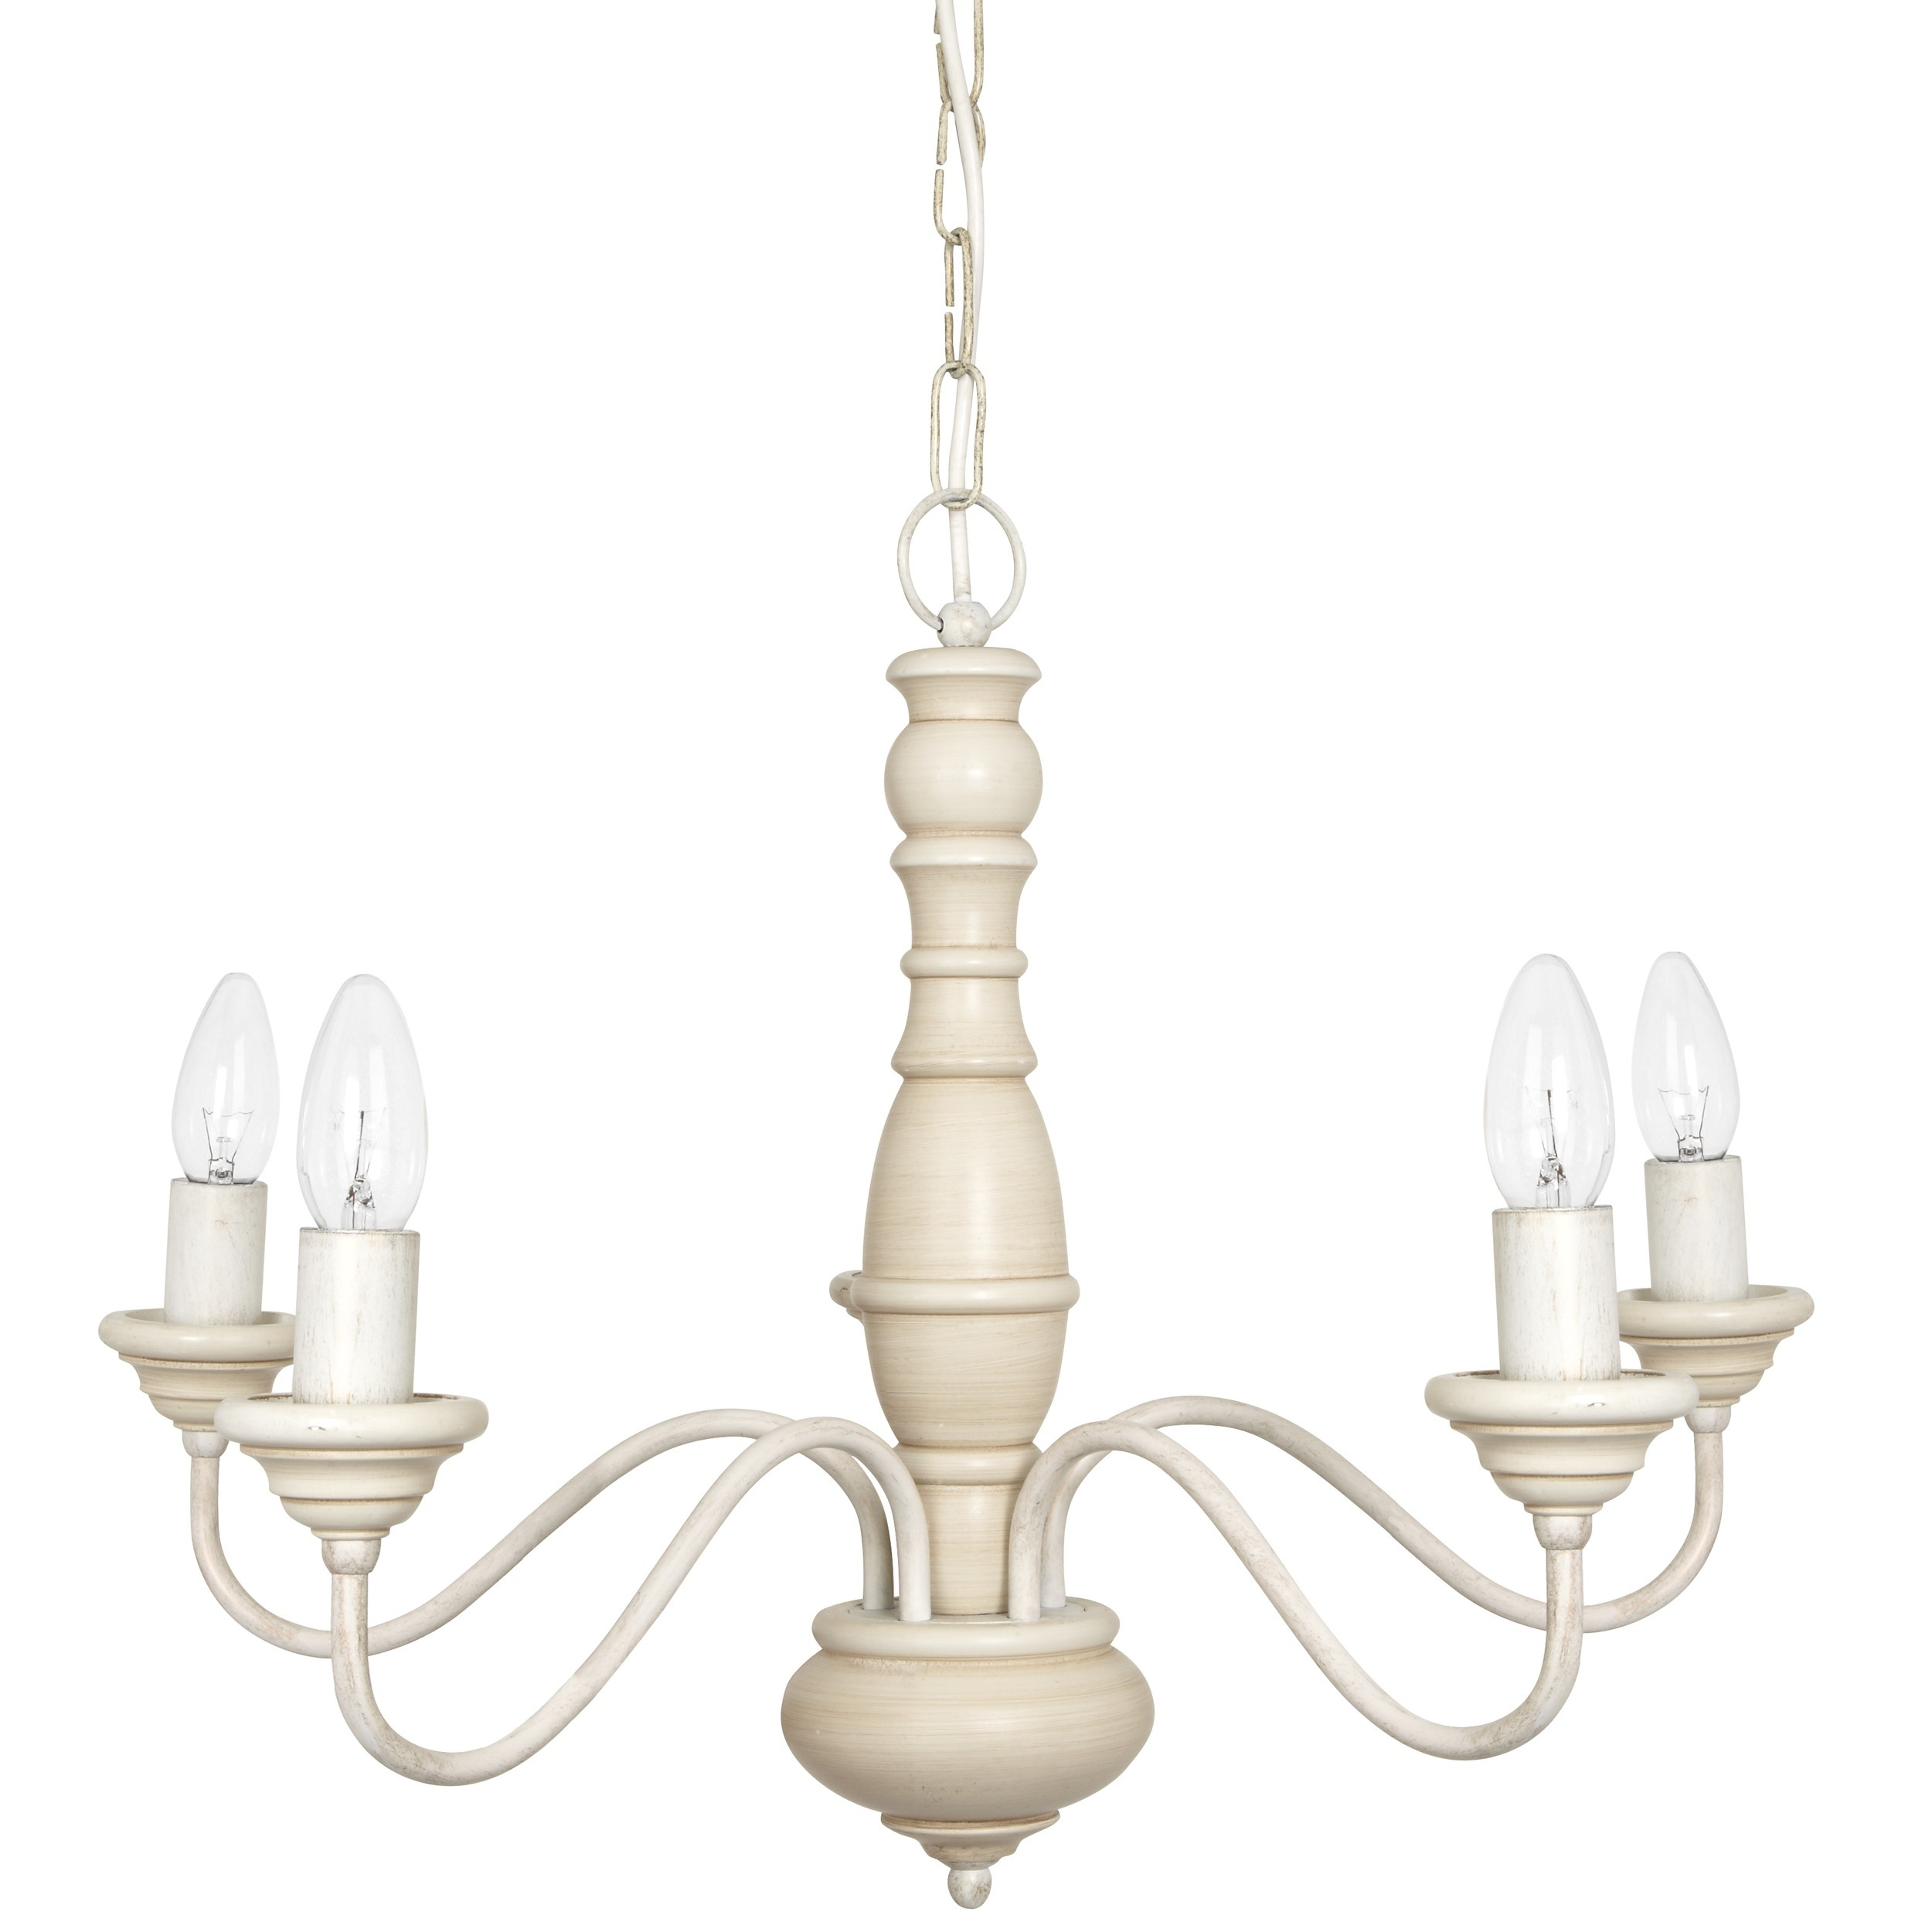 Chella Cream 3 Light Chandelier At Laura Ashley Intended For Cream Chandelier Lights (View 3 of 15)